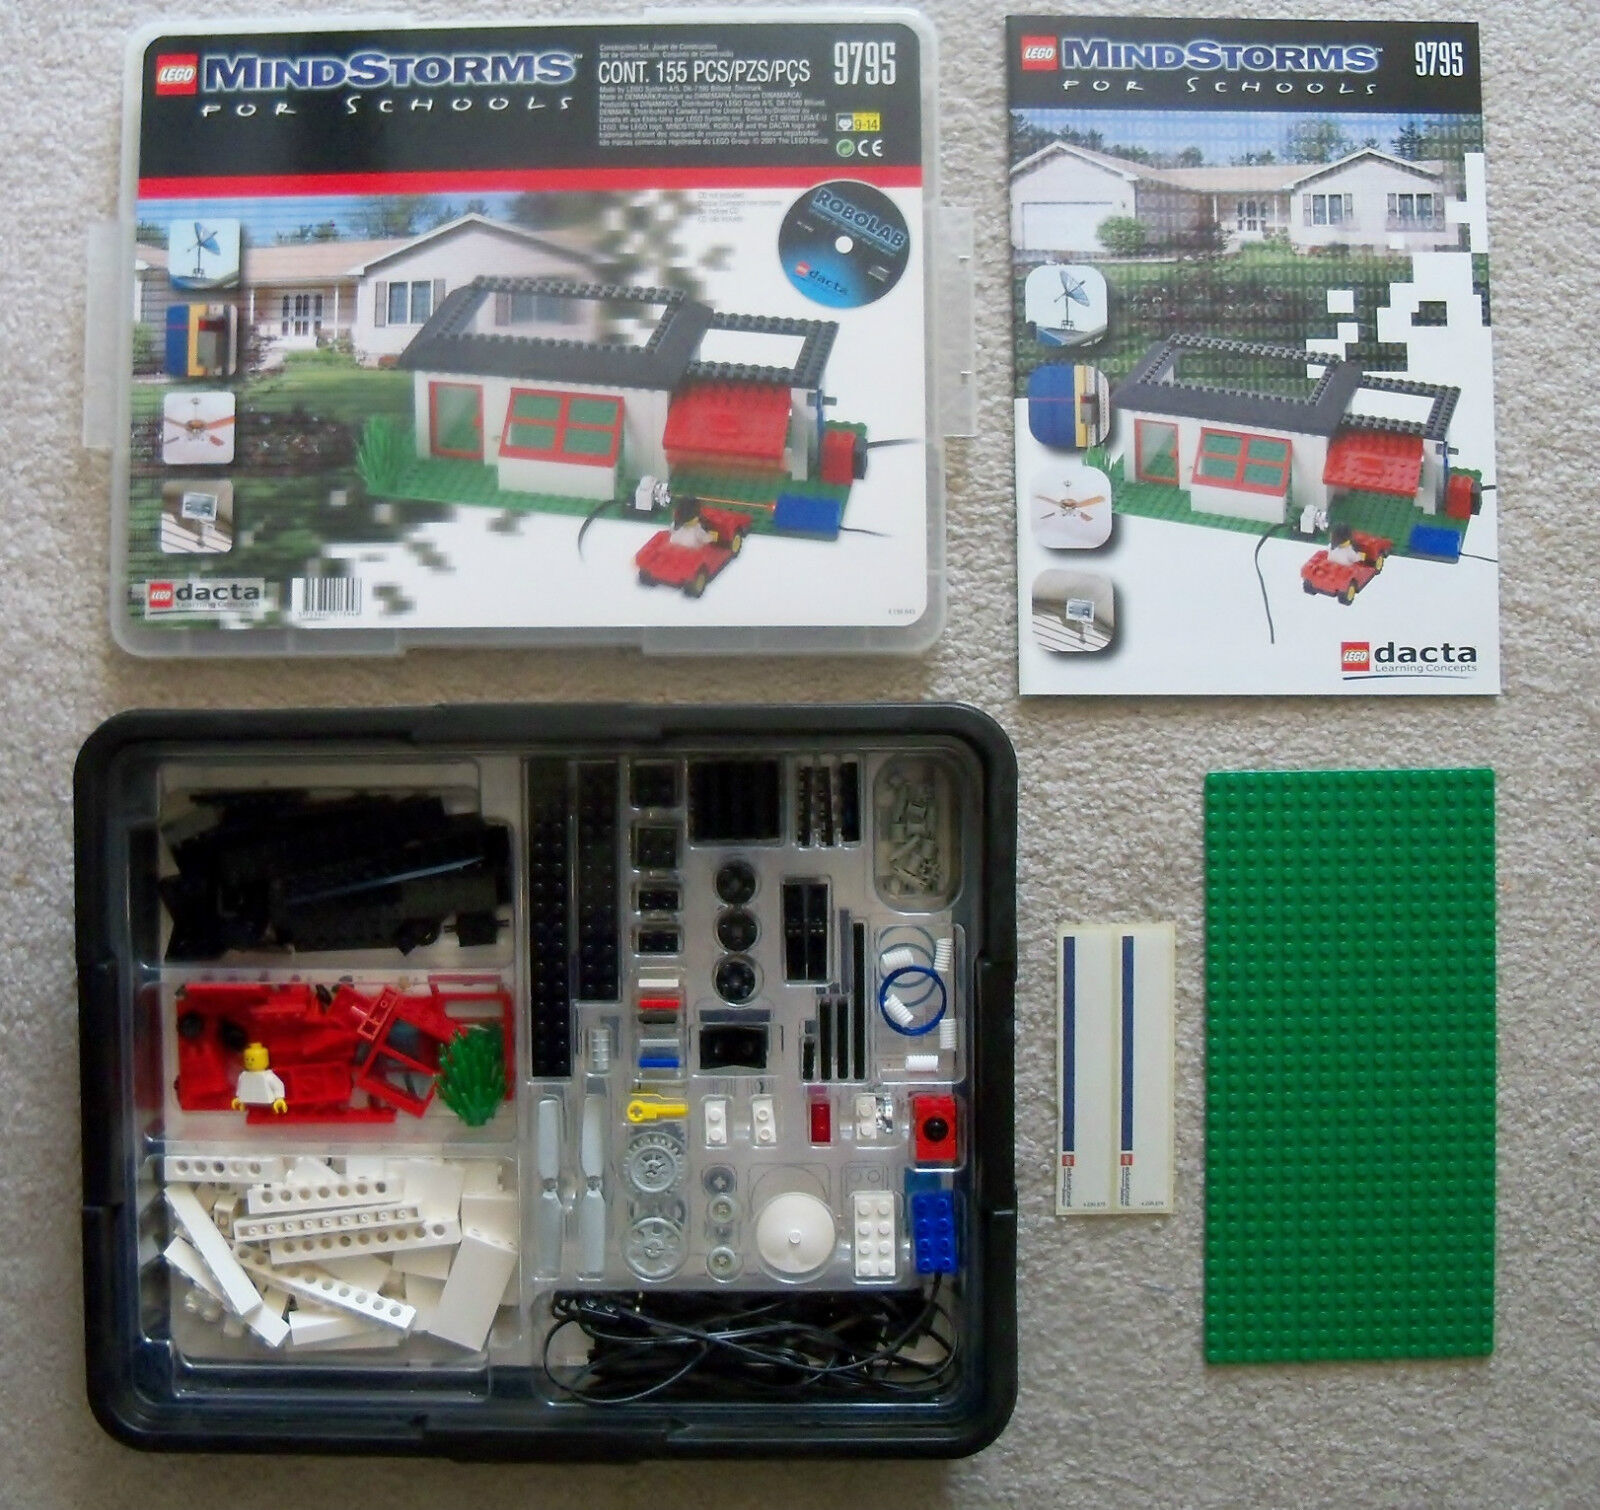 LEGO - Mindstorms ROBOLAB RCX - Rare - 9795 Intelligent House Building Set